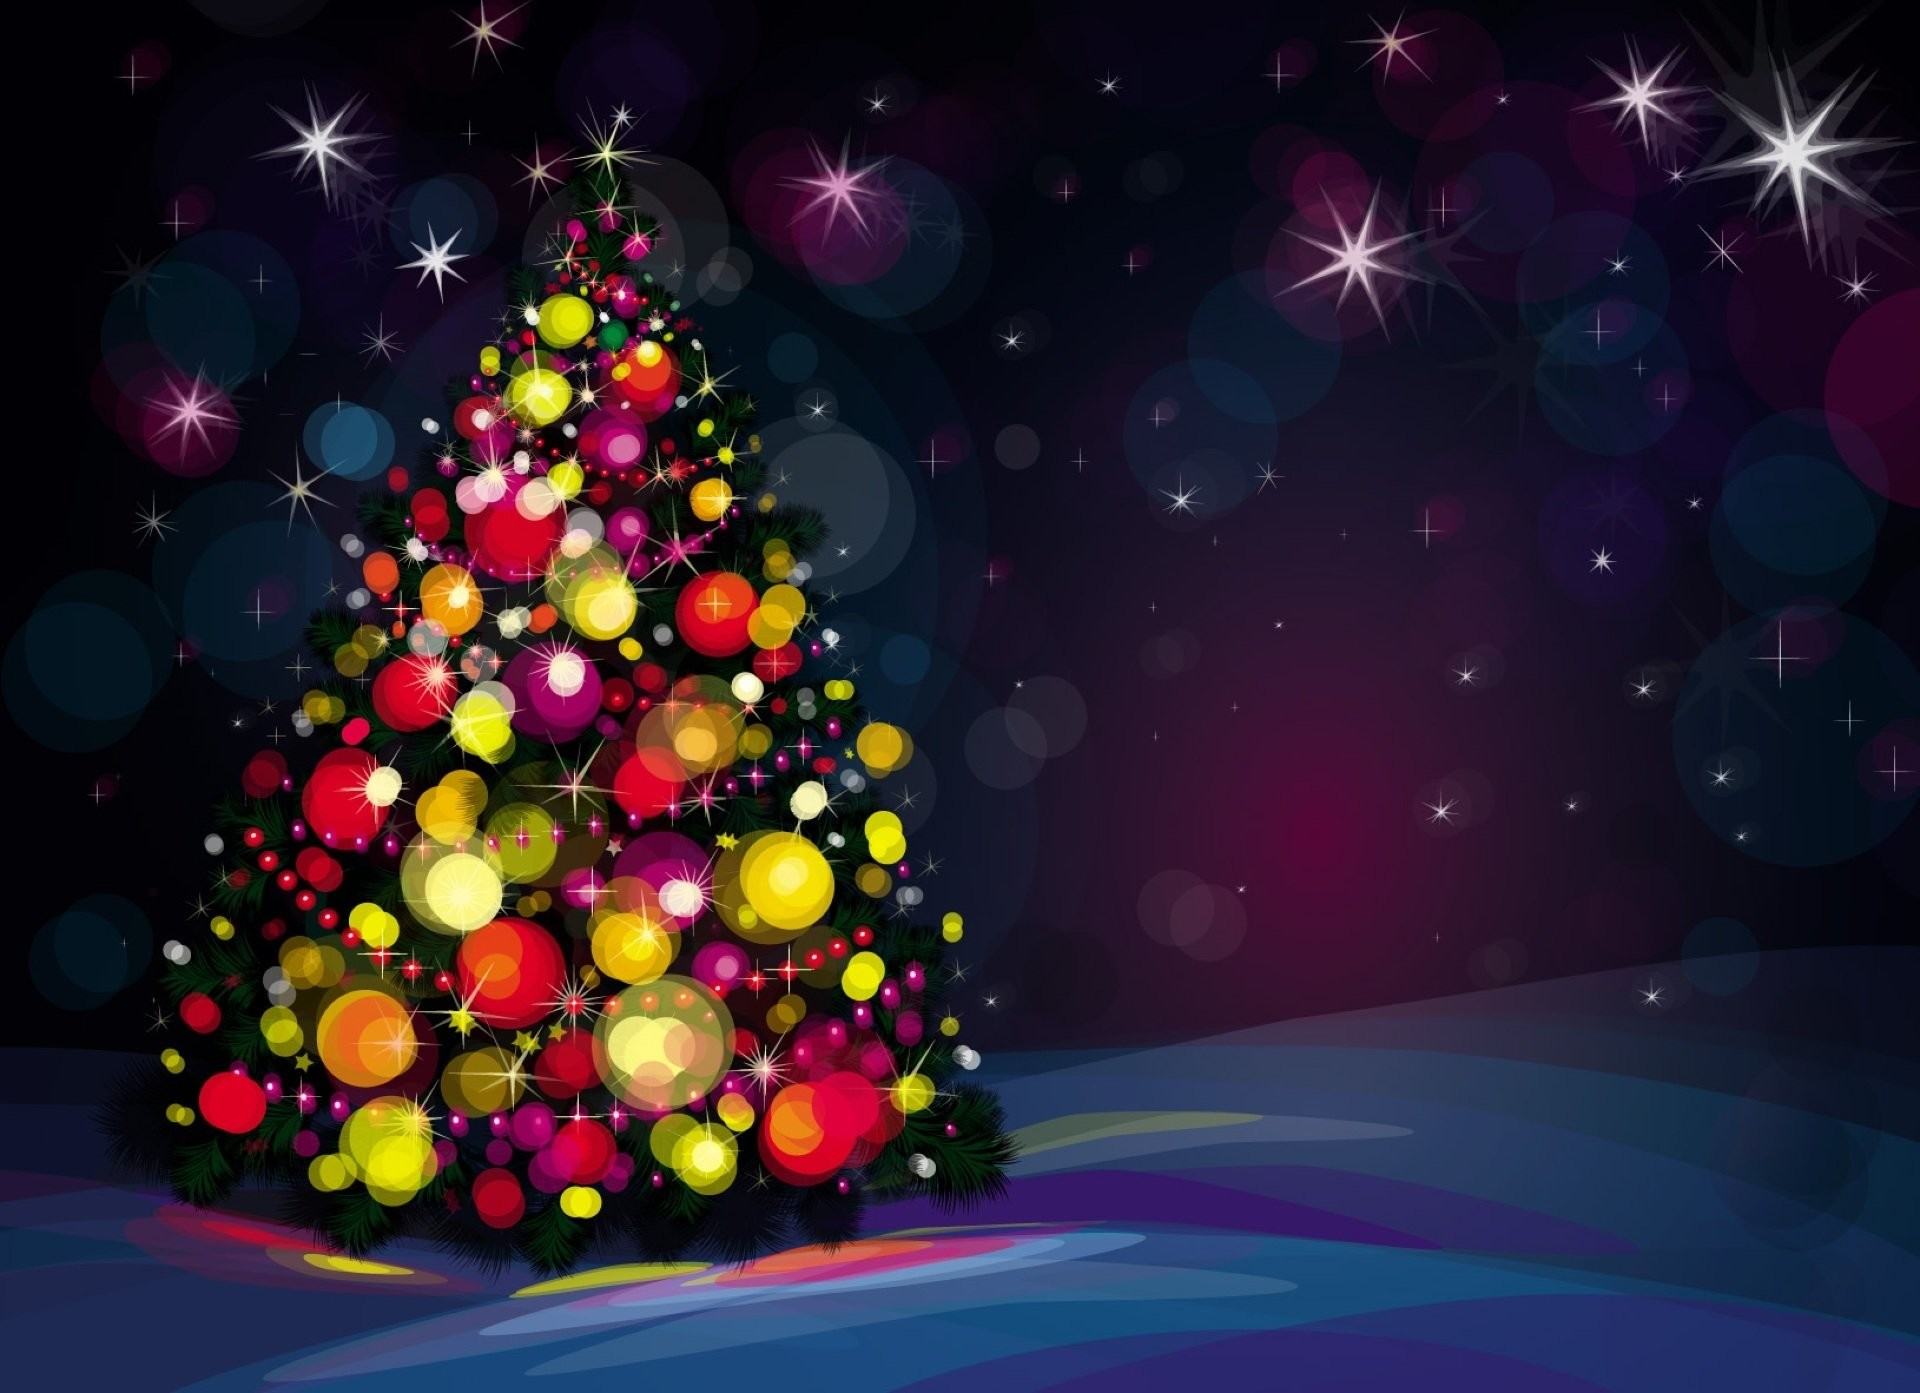 1920x1393 Christmas Tree Wallpaper Image Desktop. Beautiful Christmas Tree Wallpapers